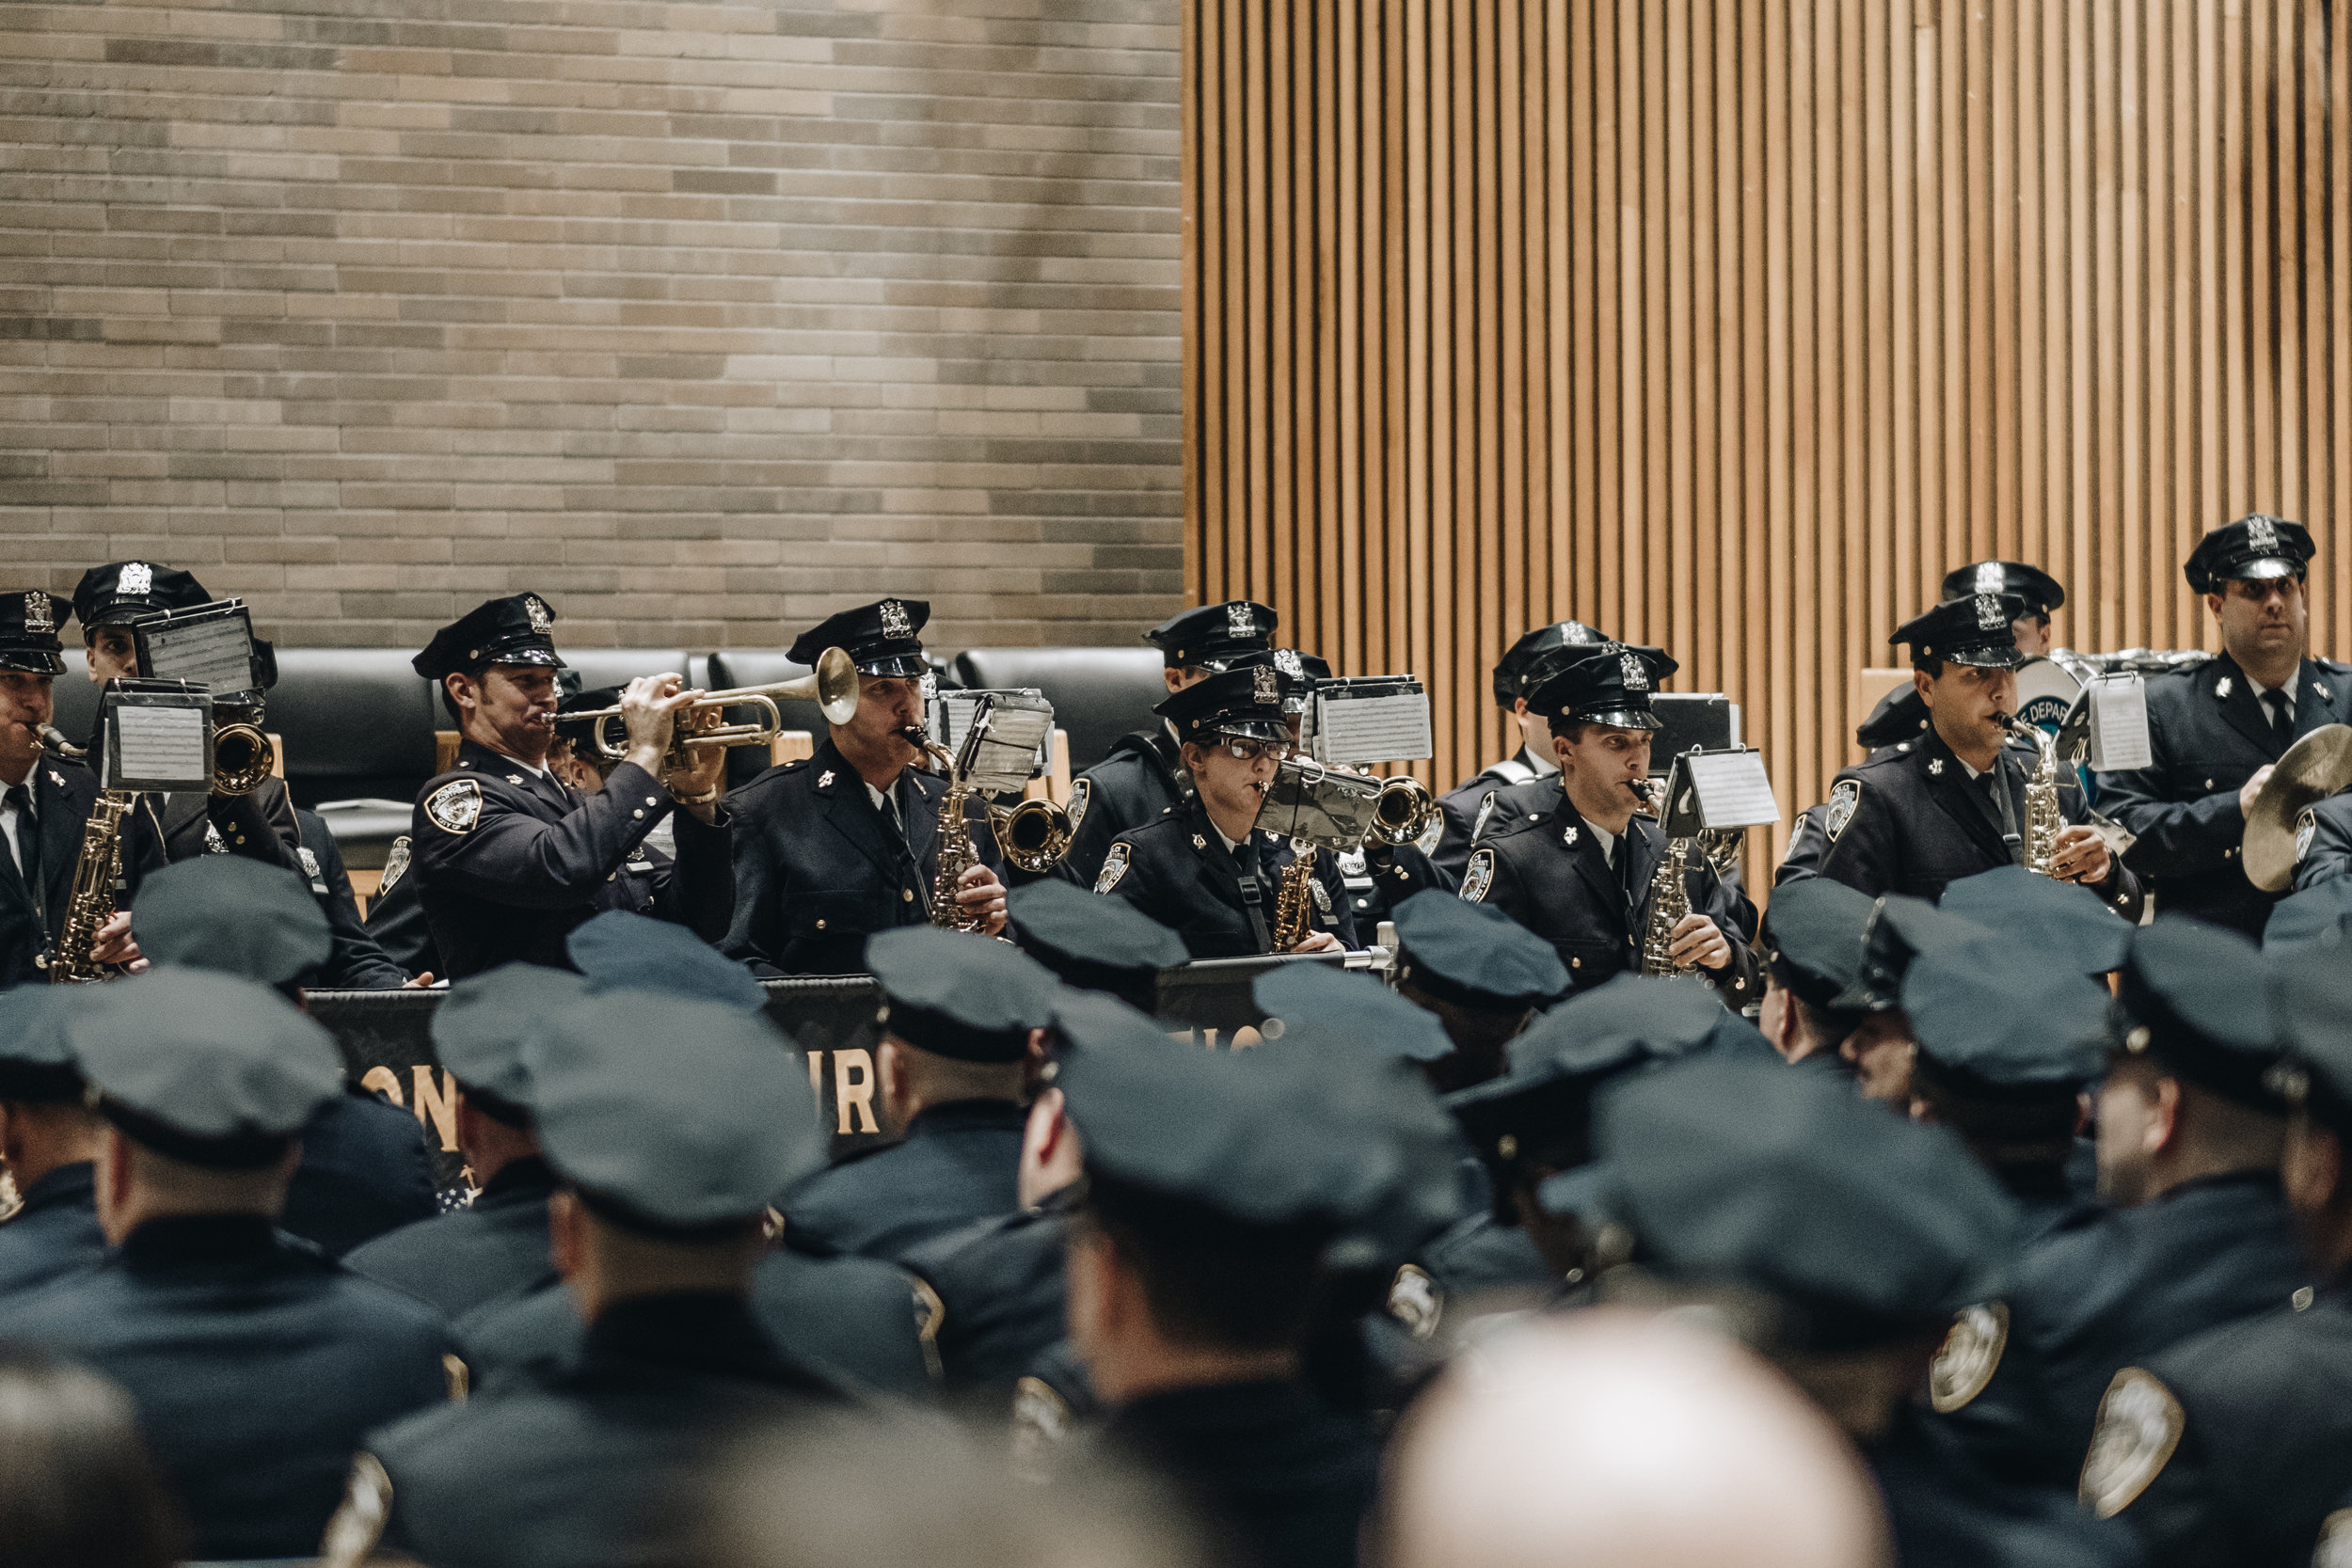 NYPD_Promotions-21.jpg